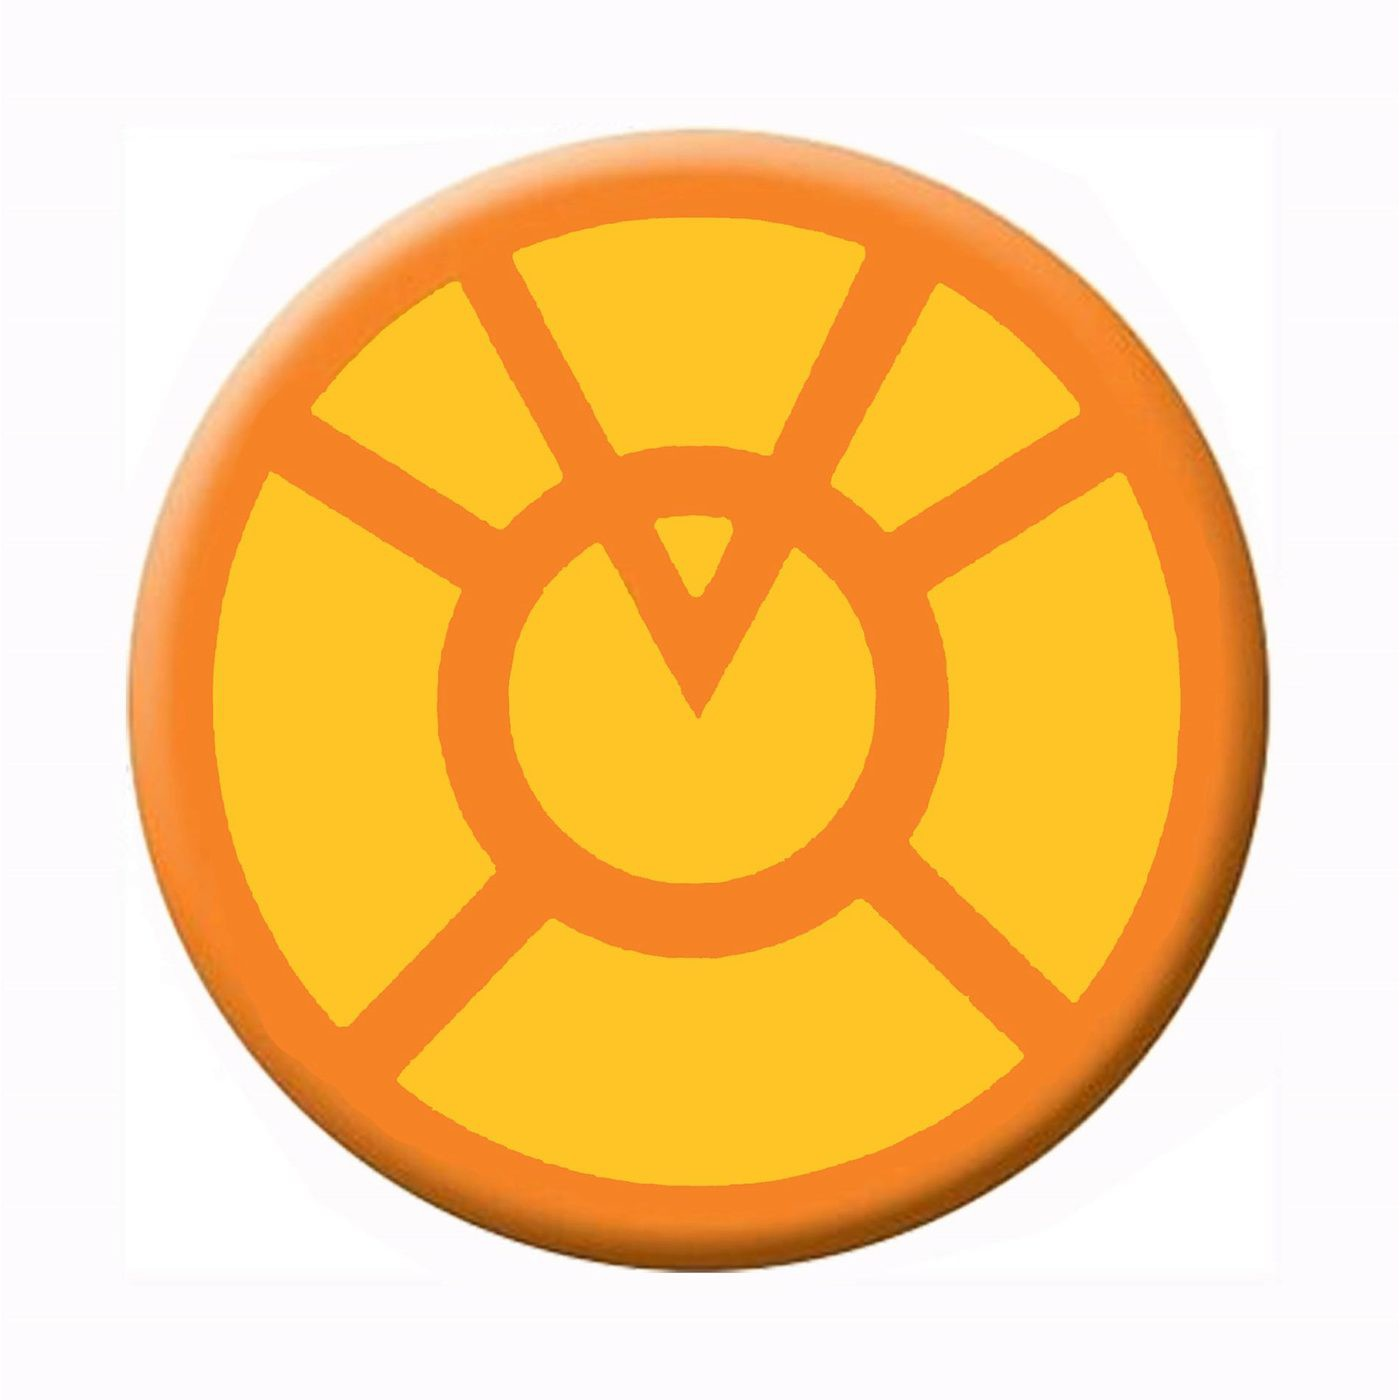 Green Lantern Orange Lantern Symbol Button